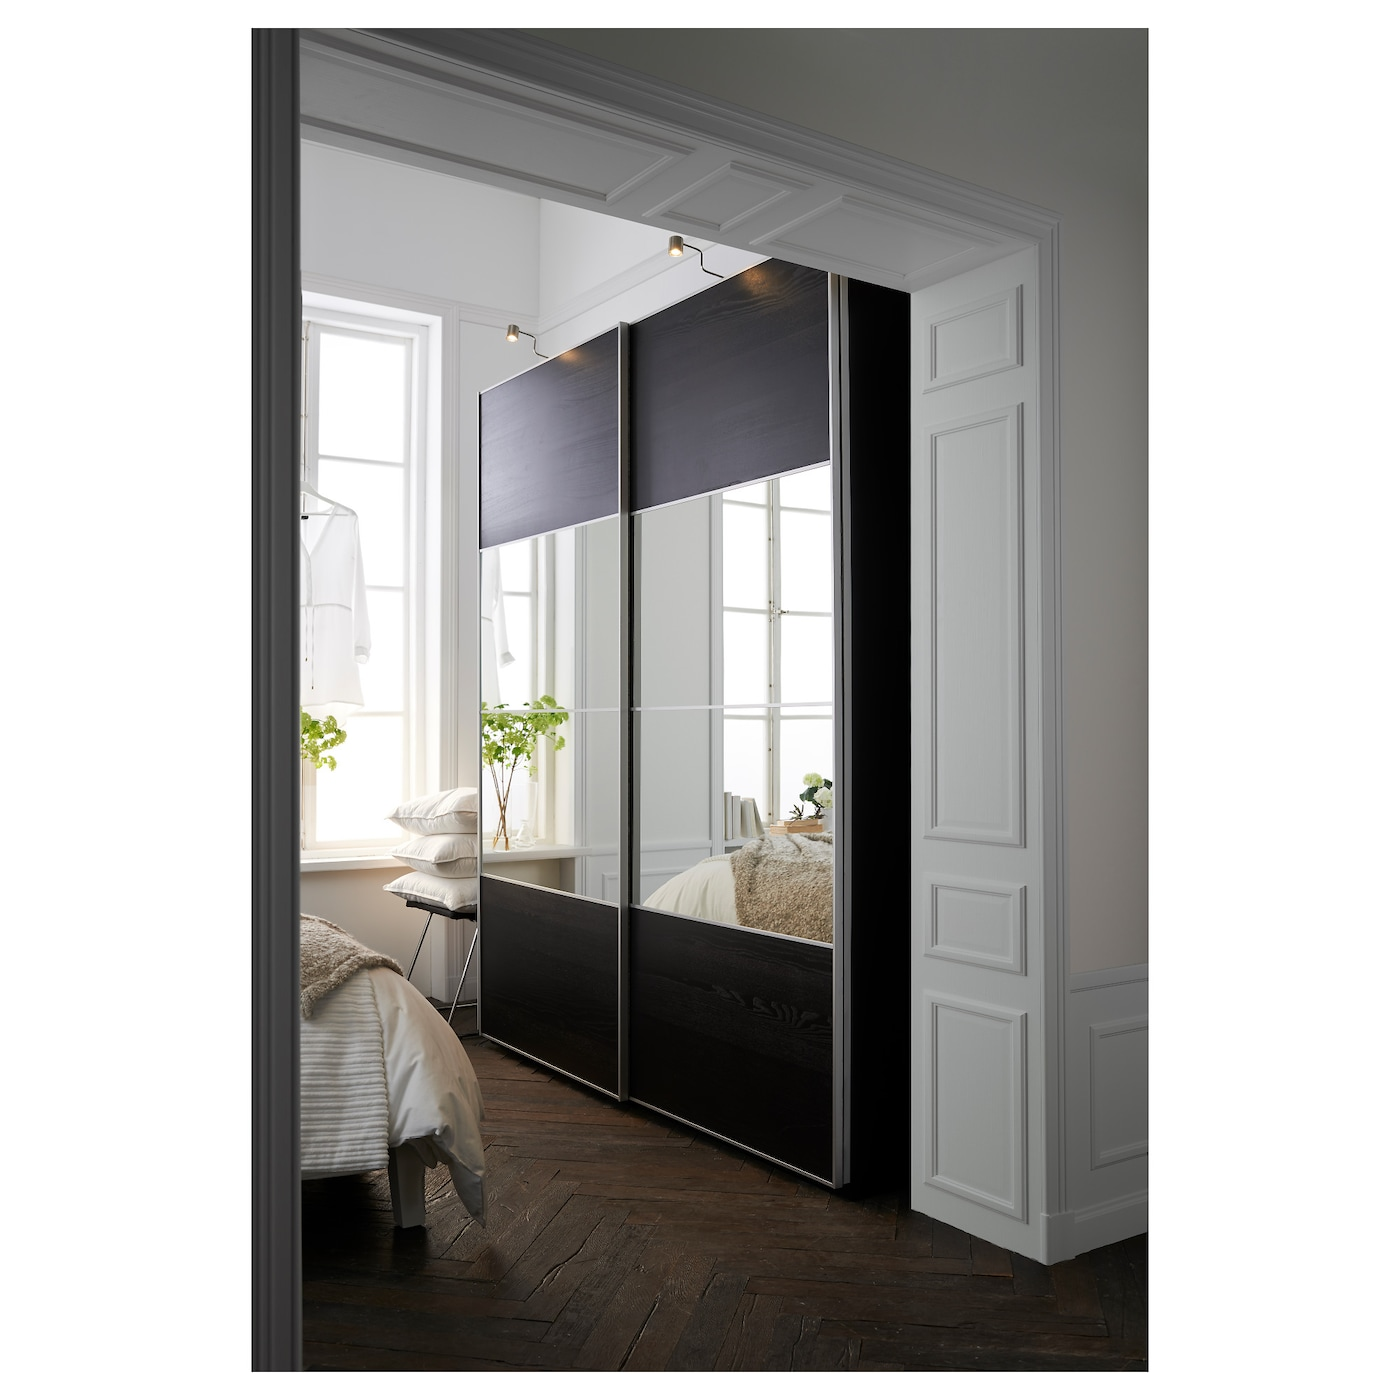 Pax wardrobe black brown auli ilseng 200x66x236 cm ikea for Armoire bois noir